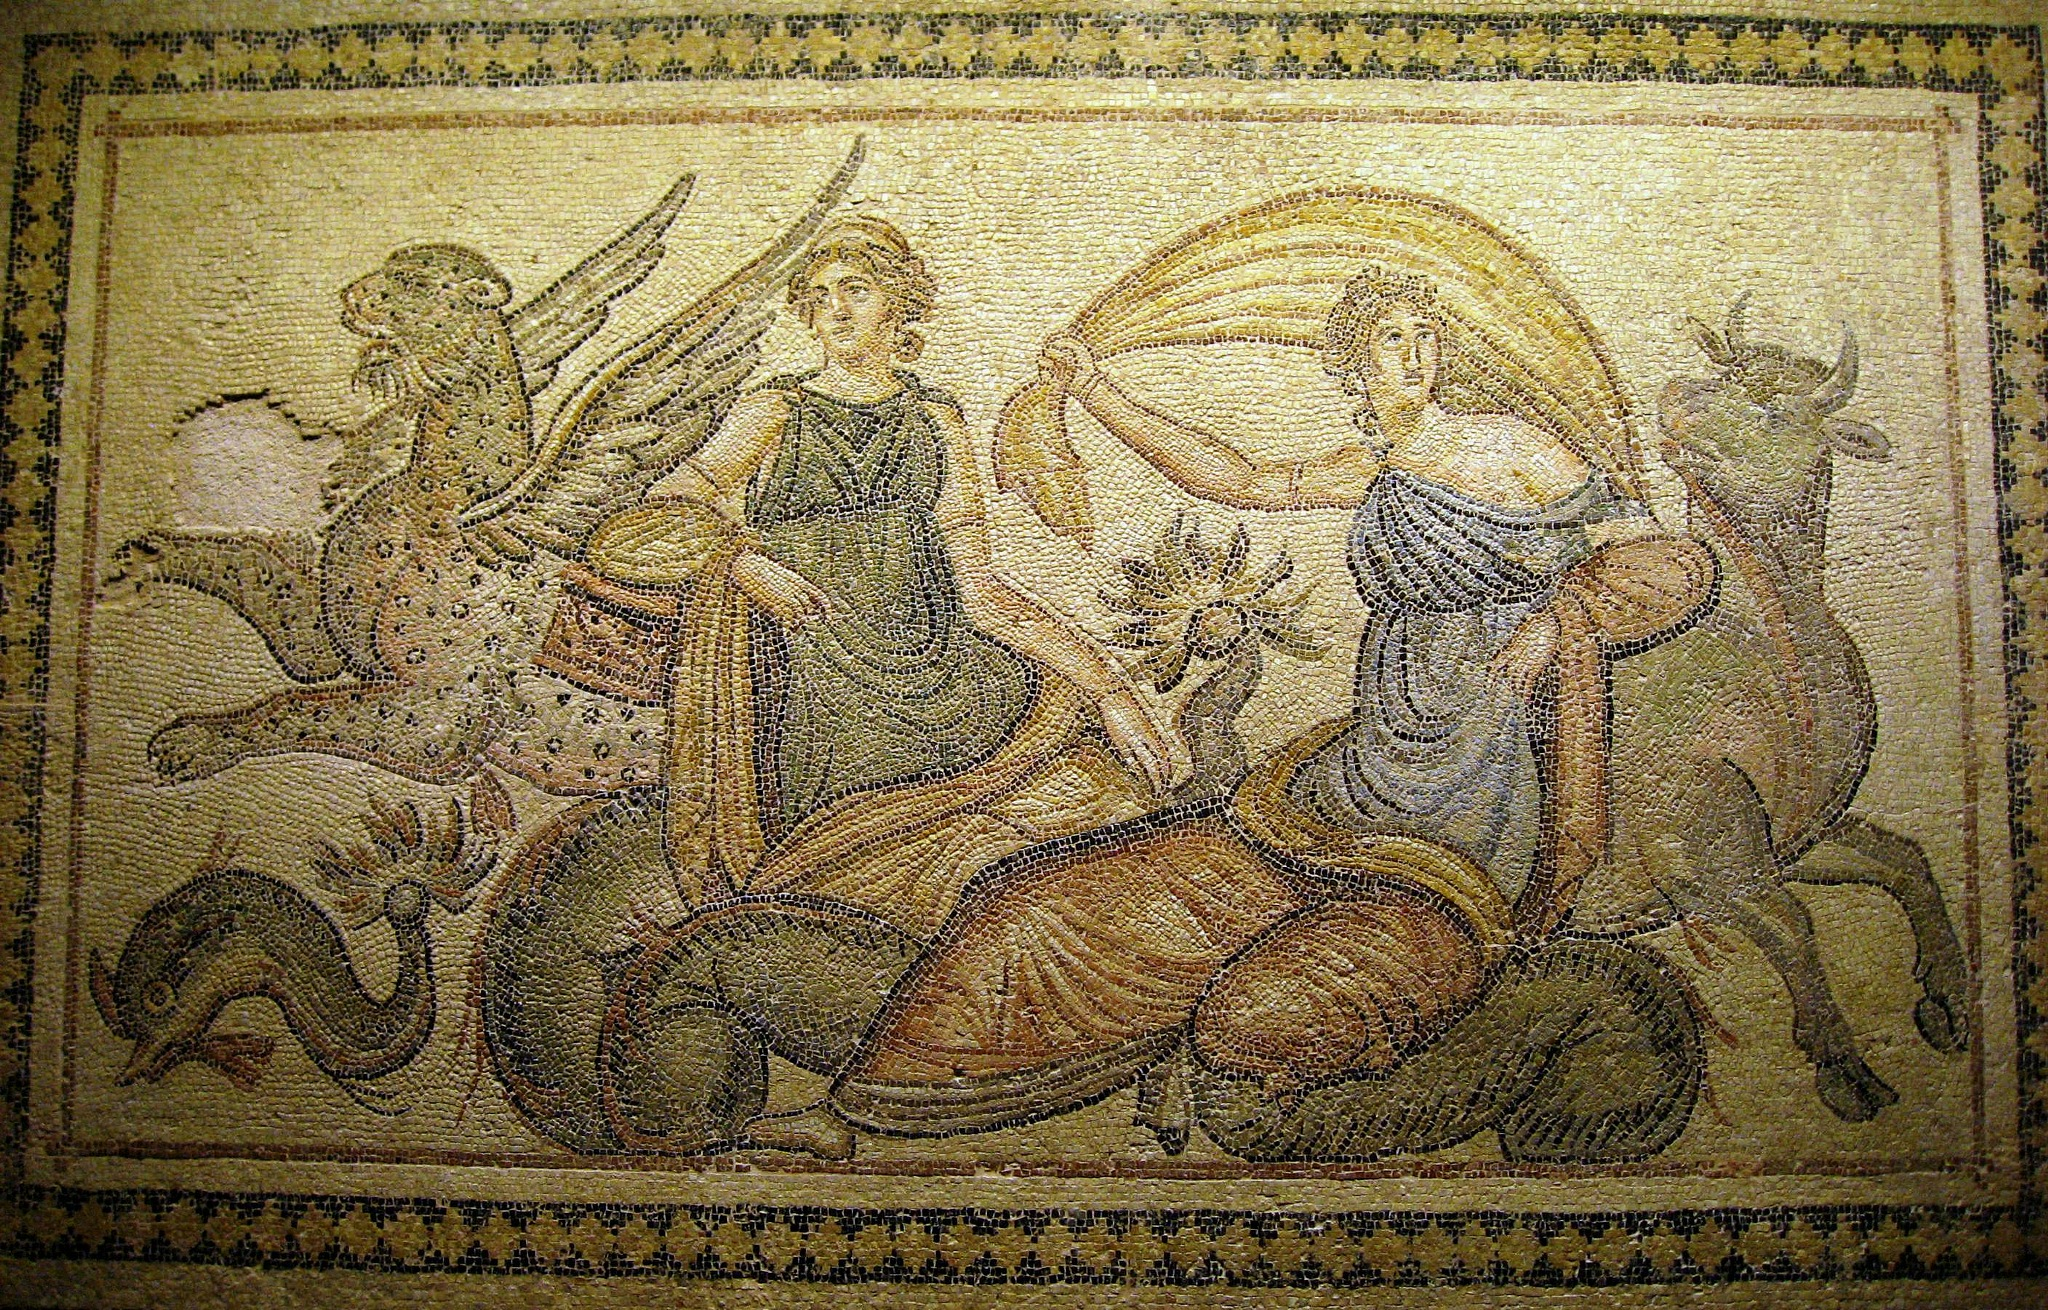 Mosaics from the southeast Anatolian Roman town of Zeugma by Ron Margulies